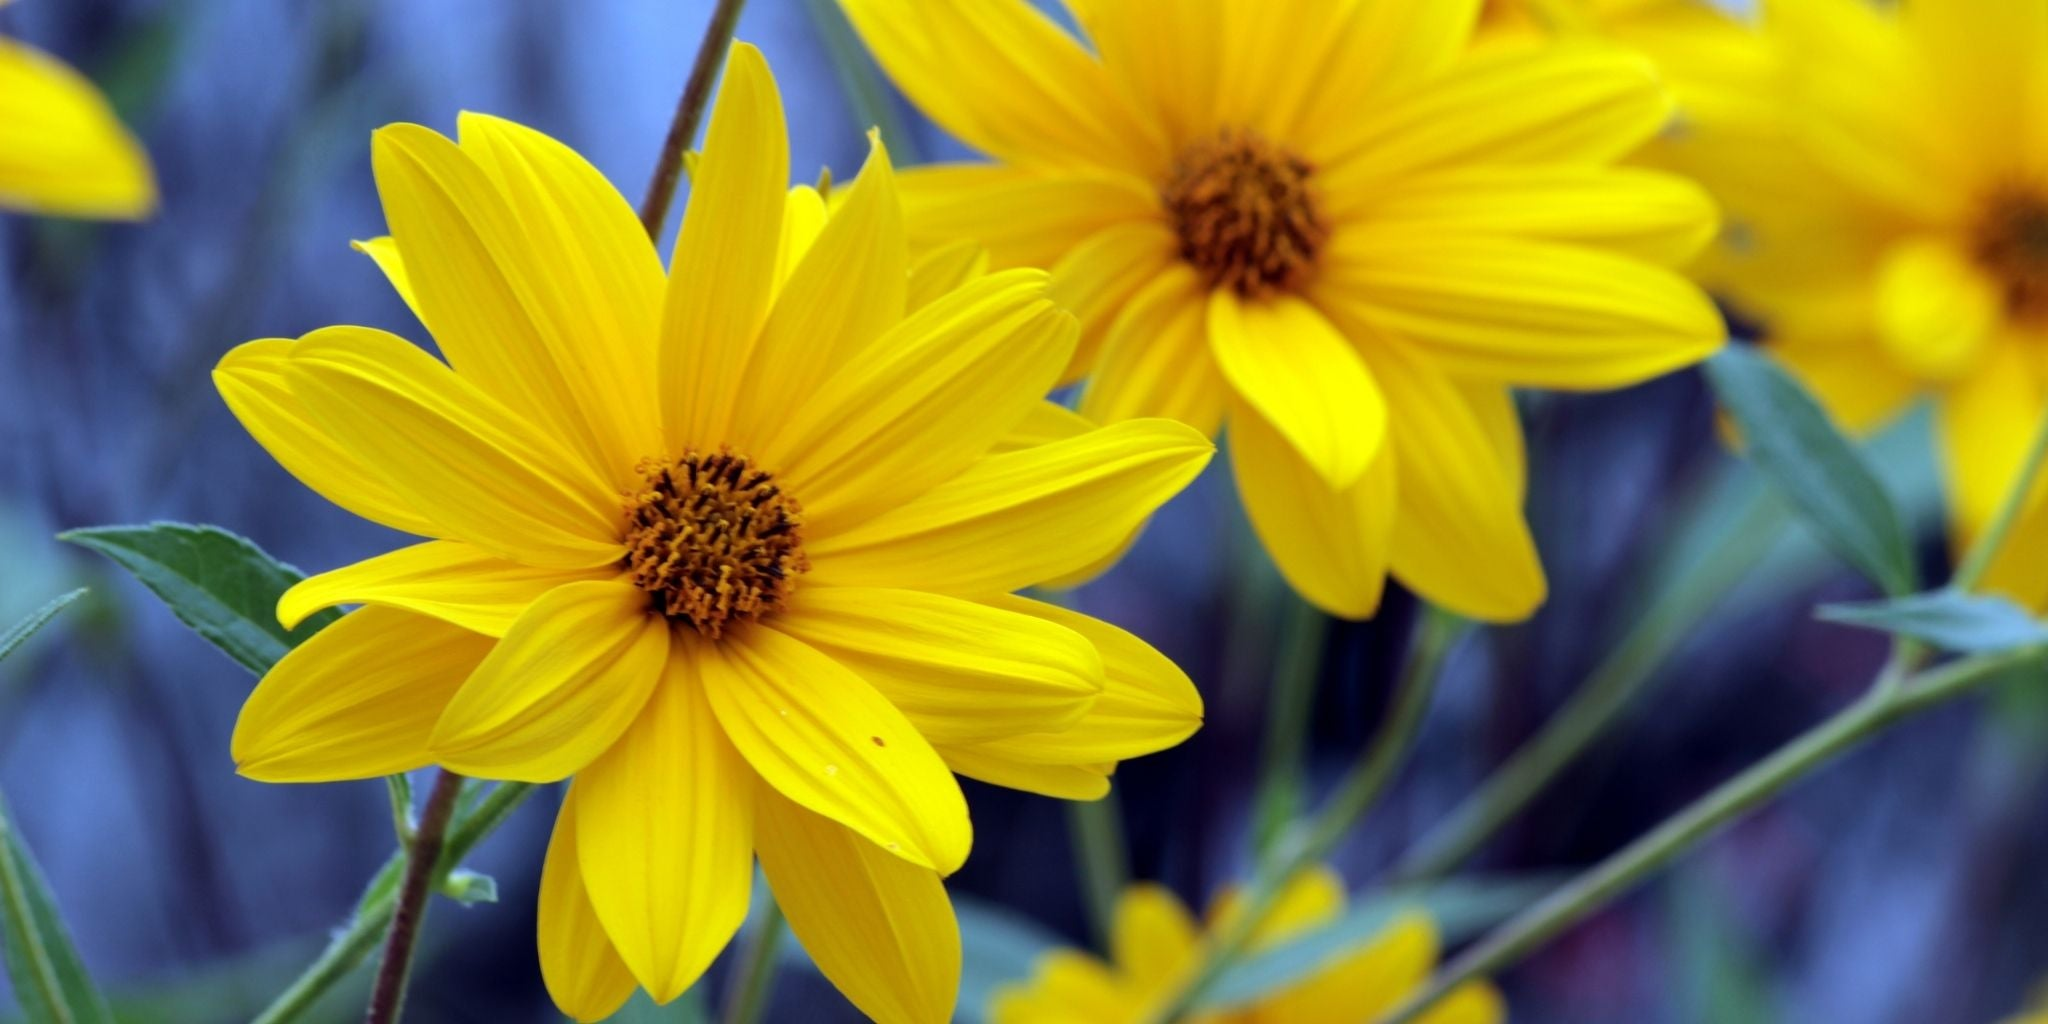 Arnica Massage Oil Benefits and Health Tips